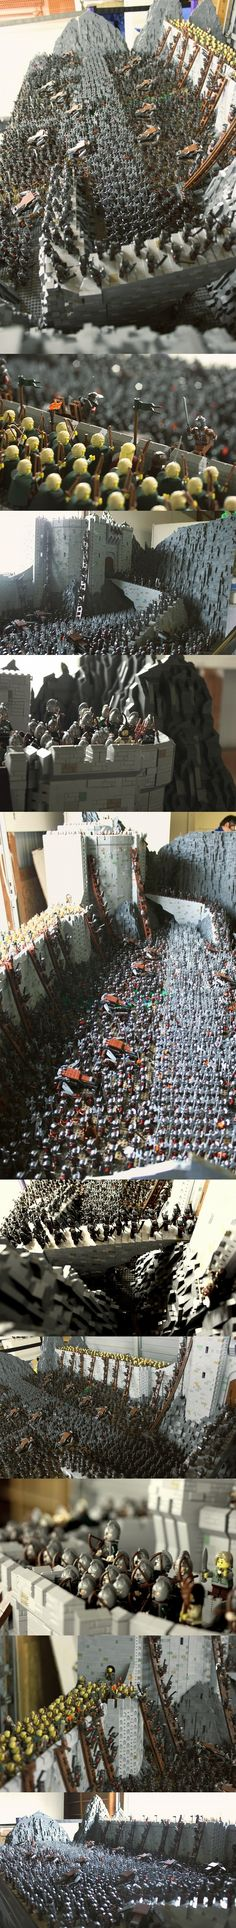 Lord of the Rings, Battle of Helms Deep, in Legos. Wow!